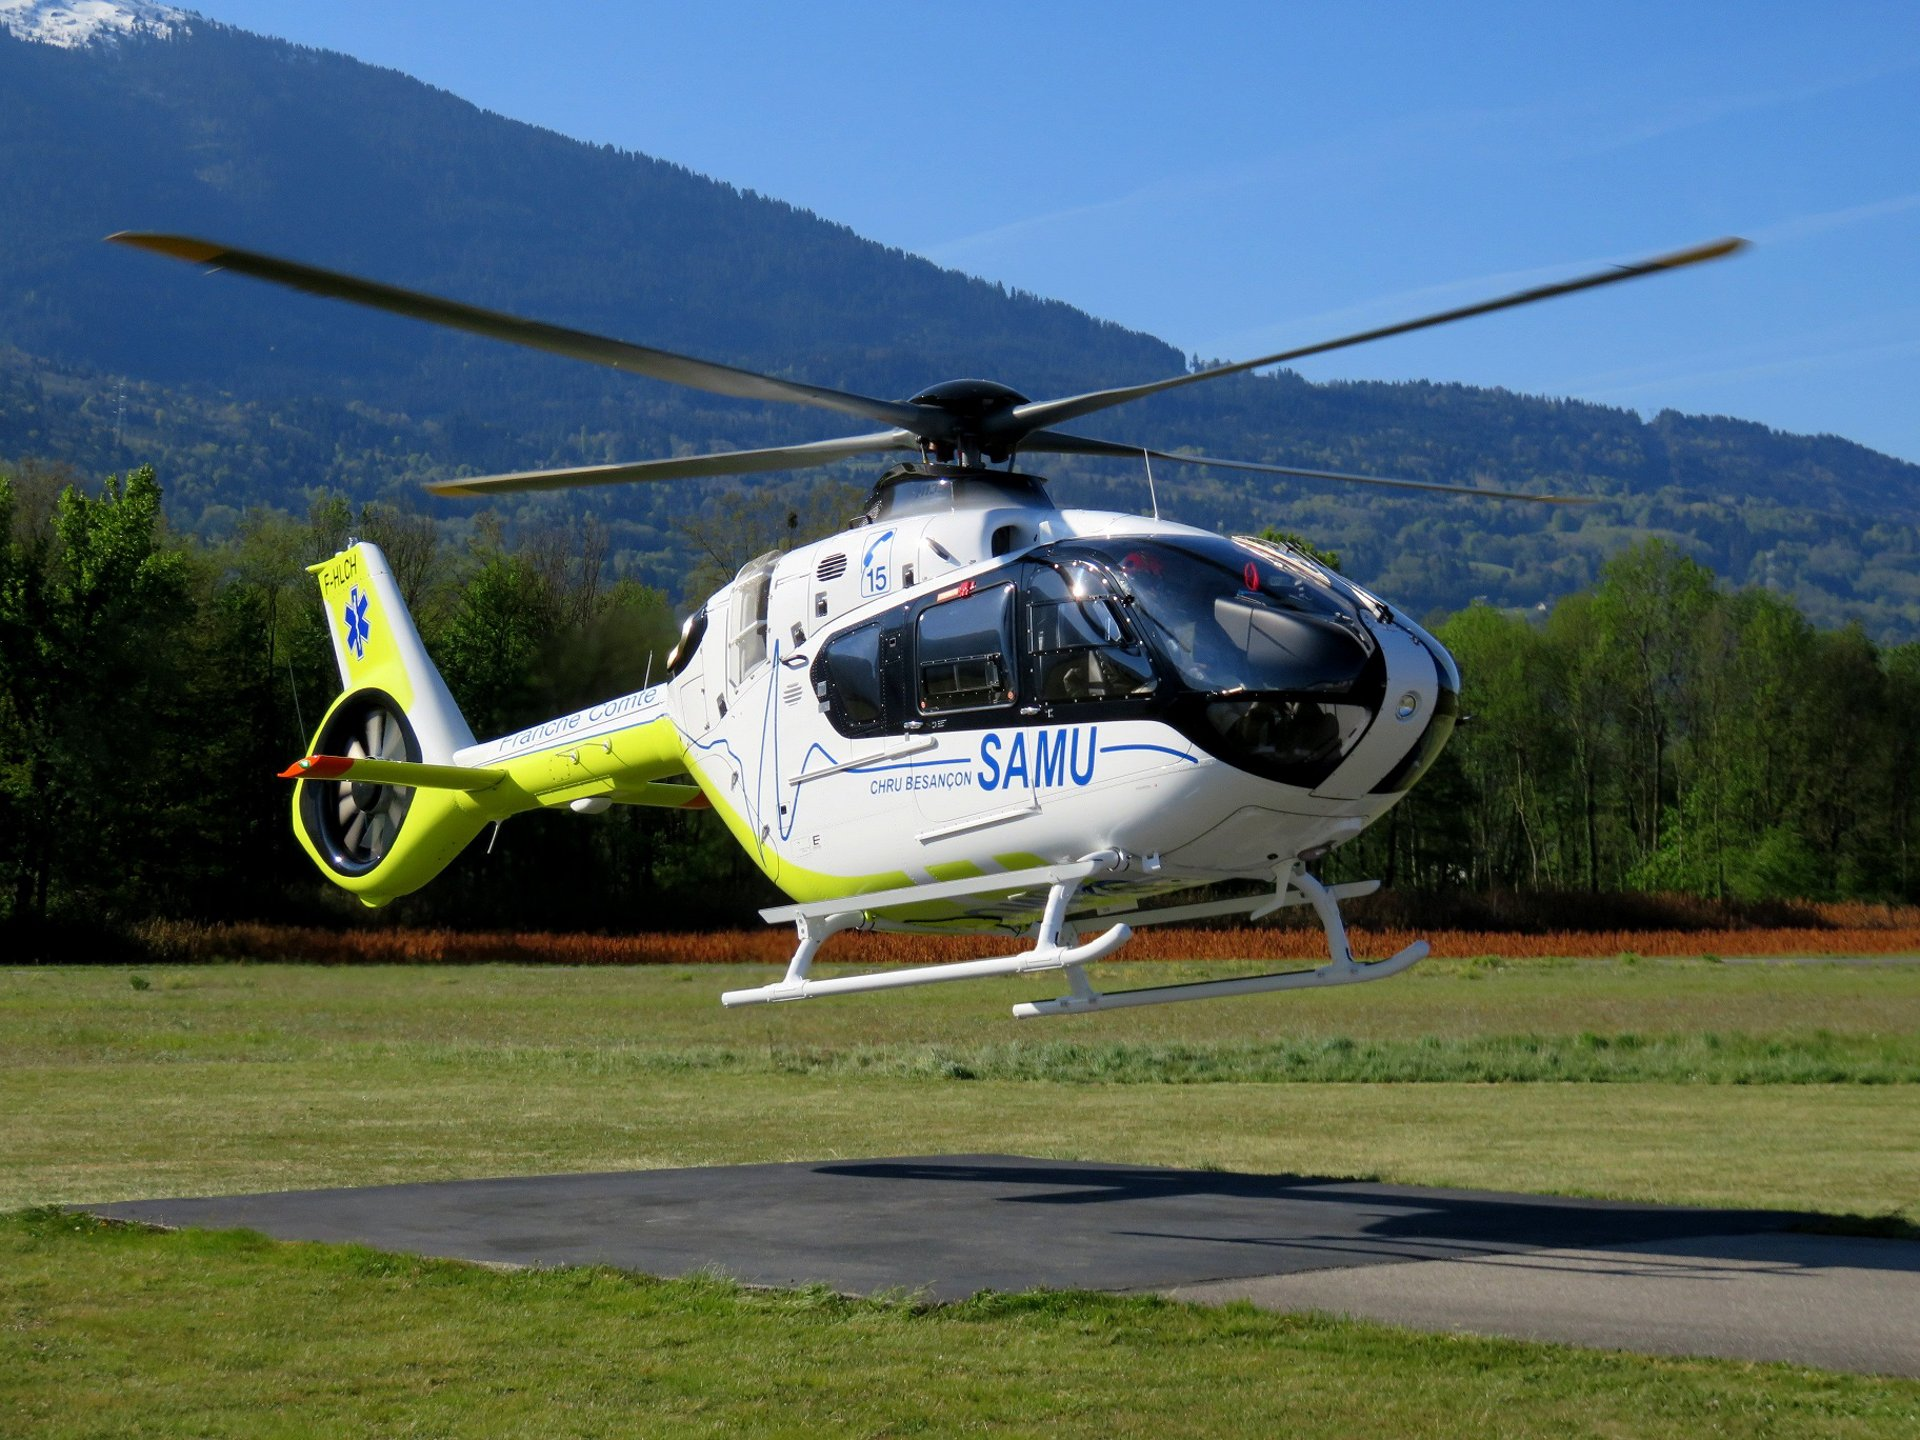 The first fleet of H135s for French emergency medical services is now fully operational